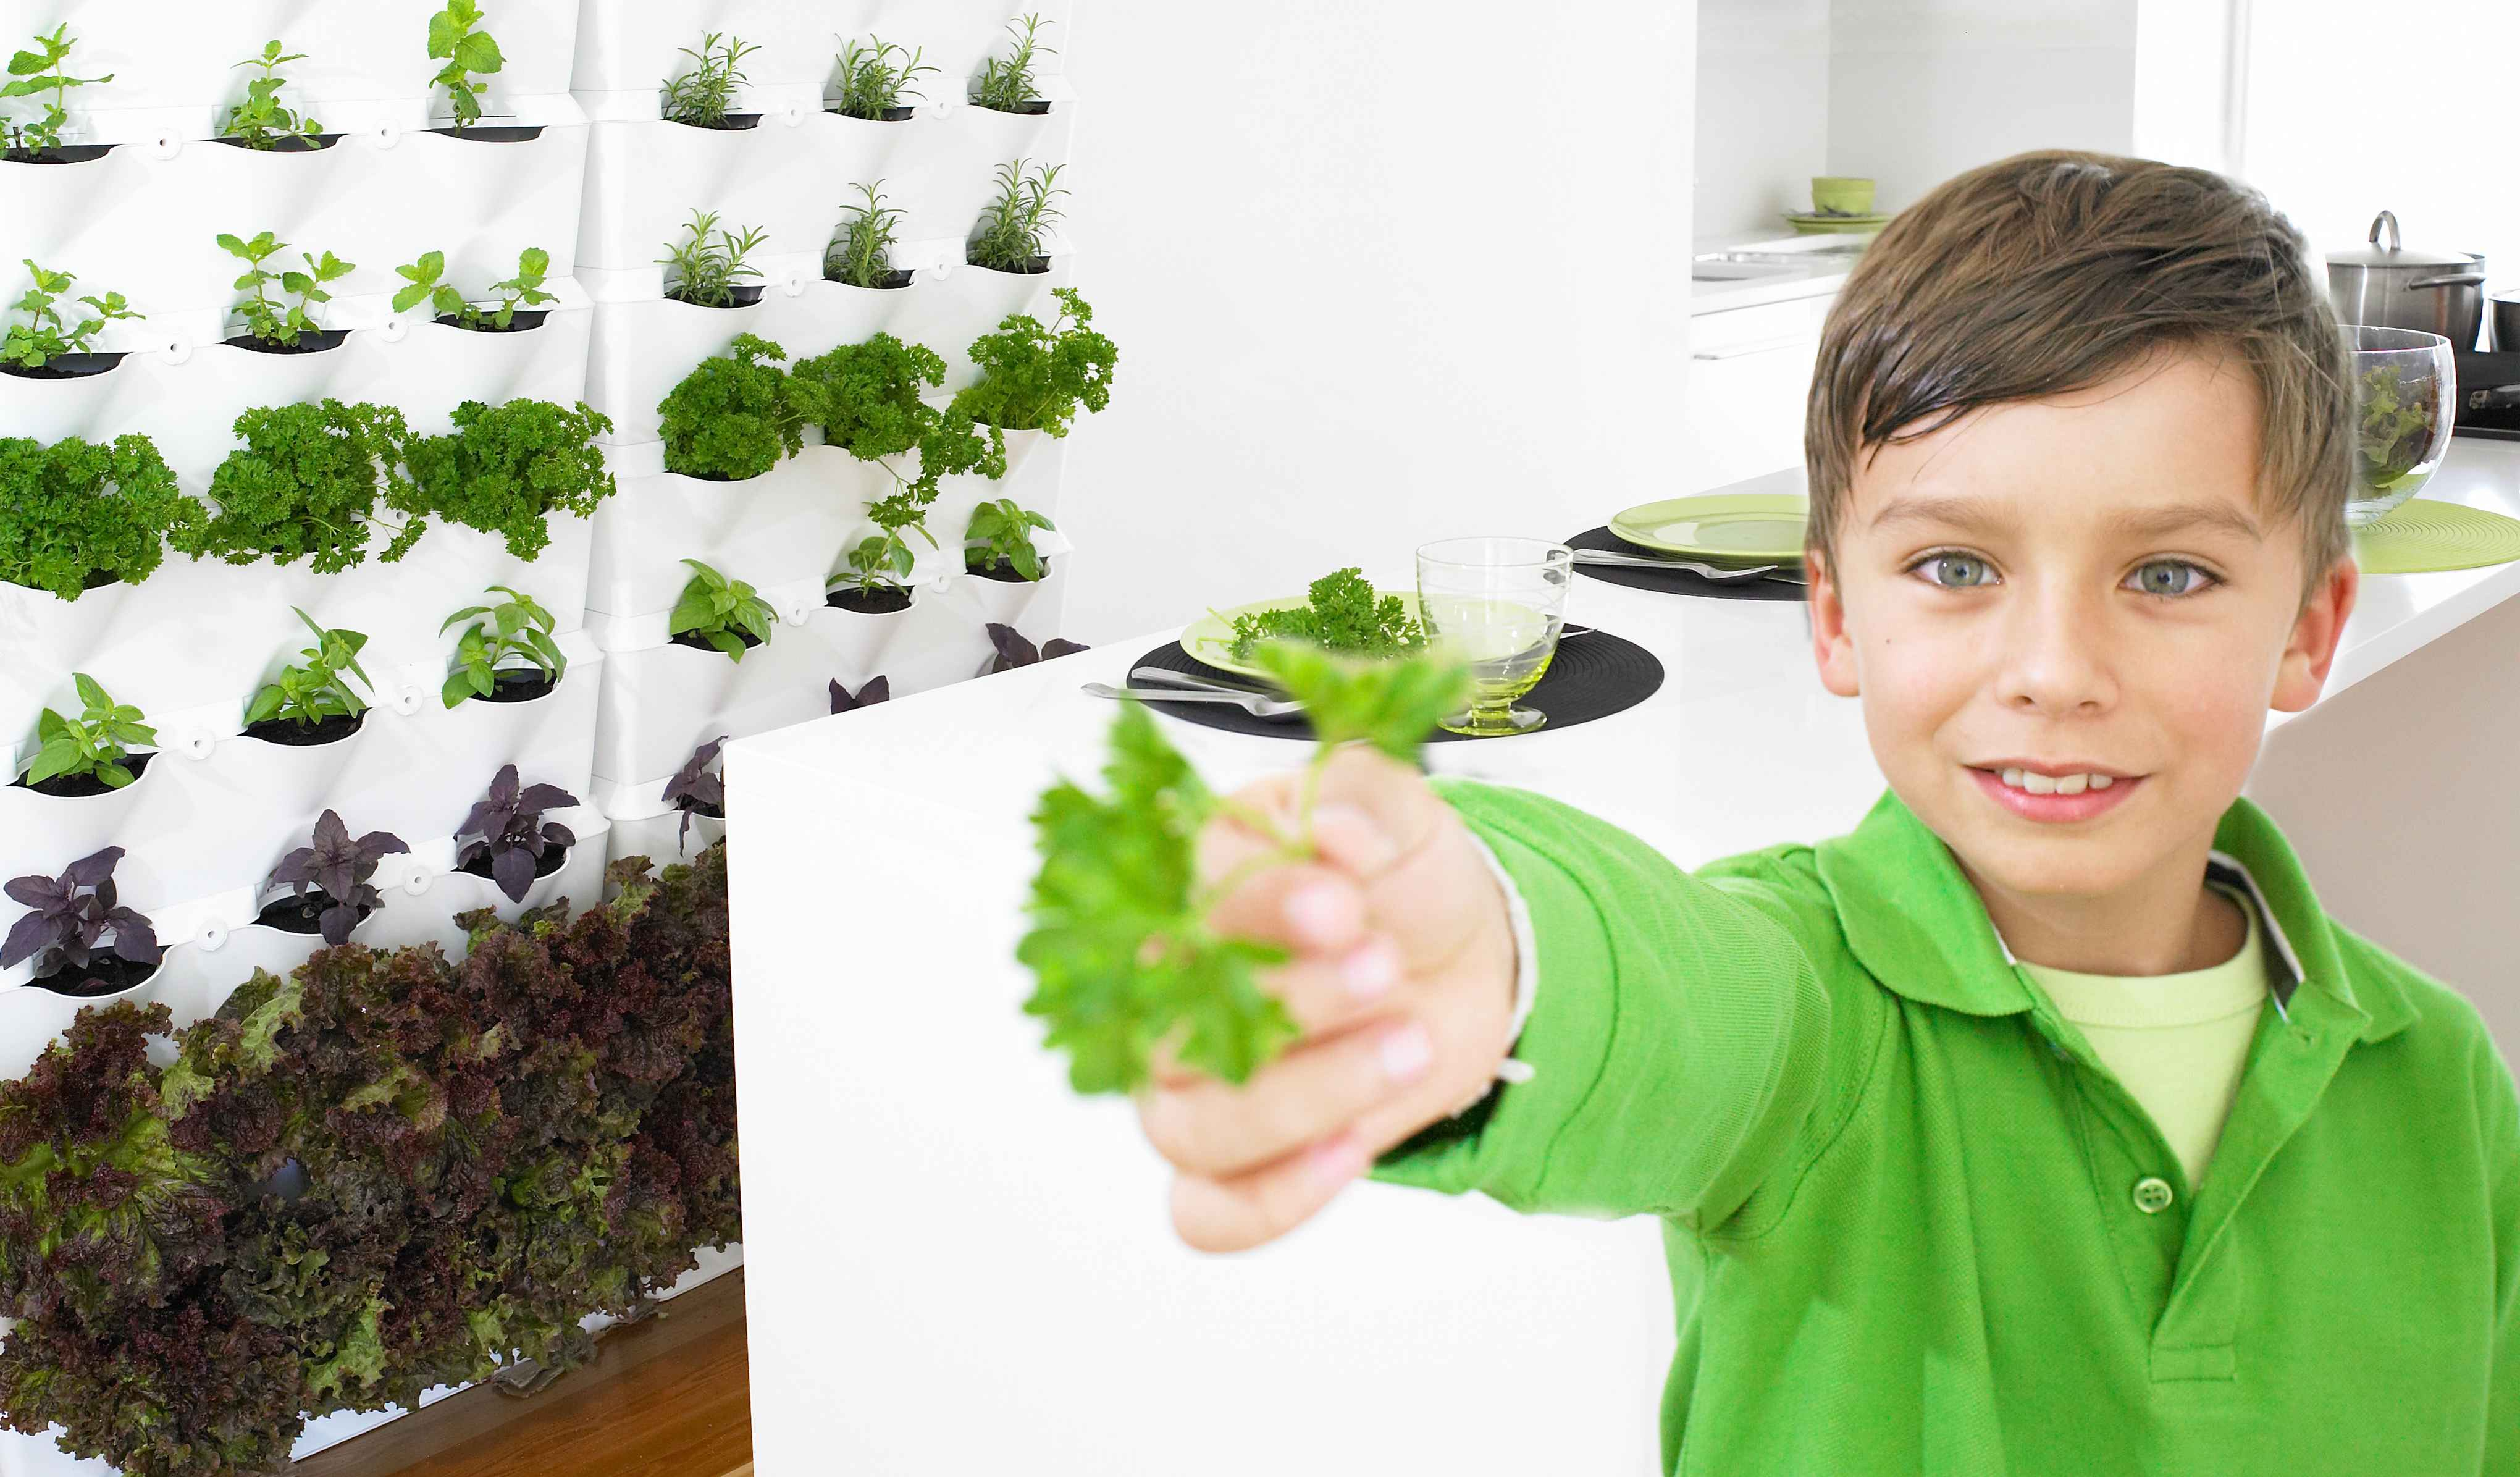 Kid With Parsley